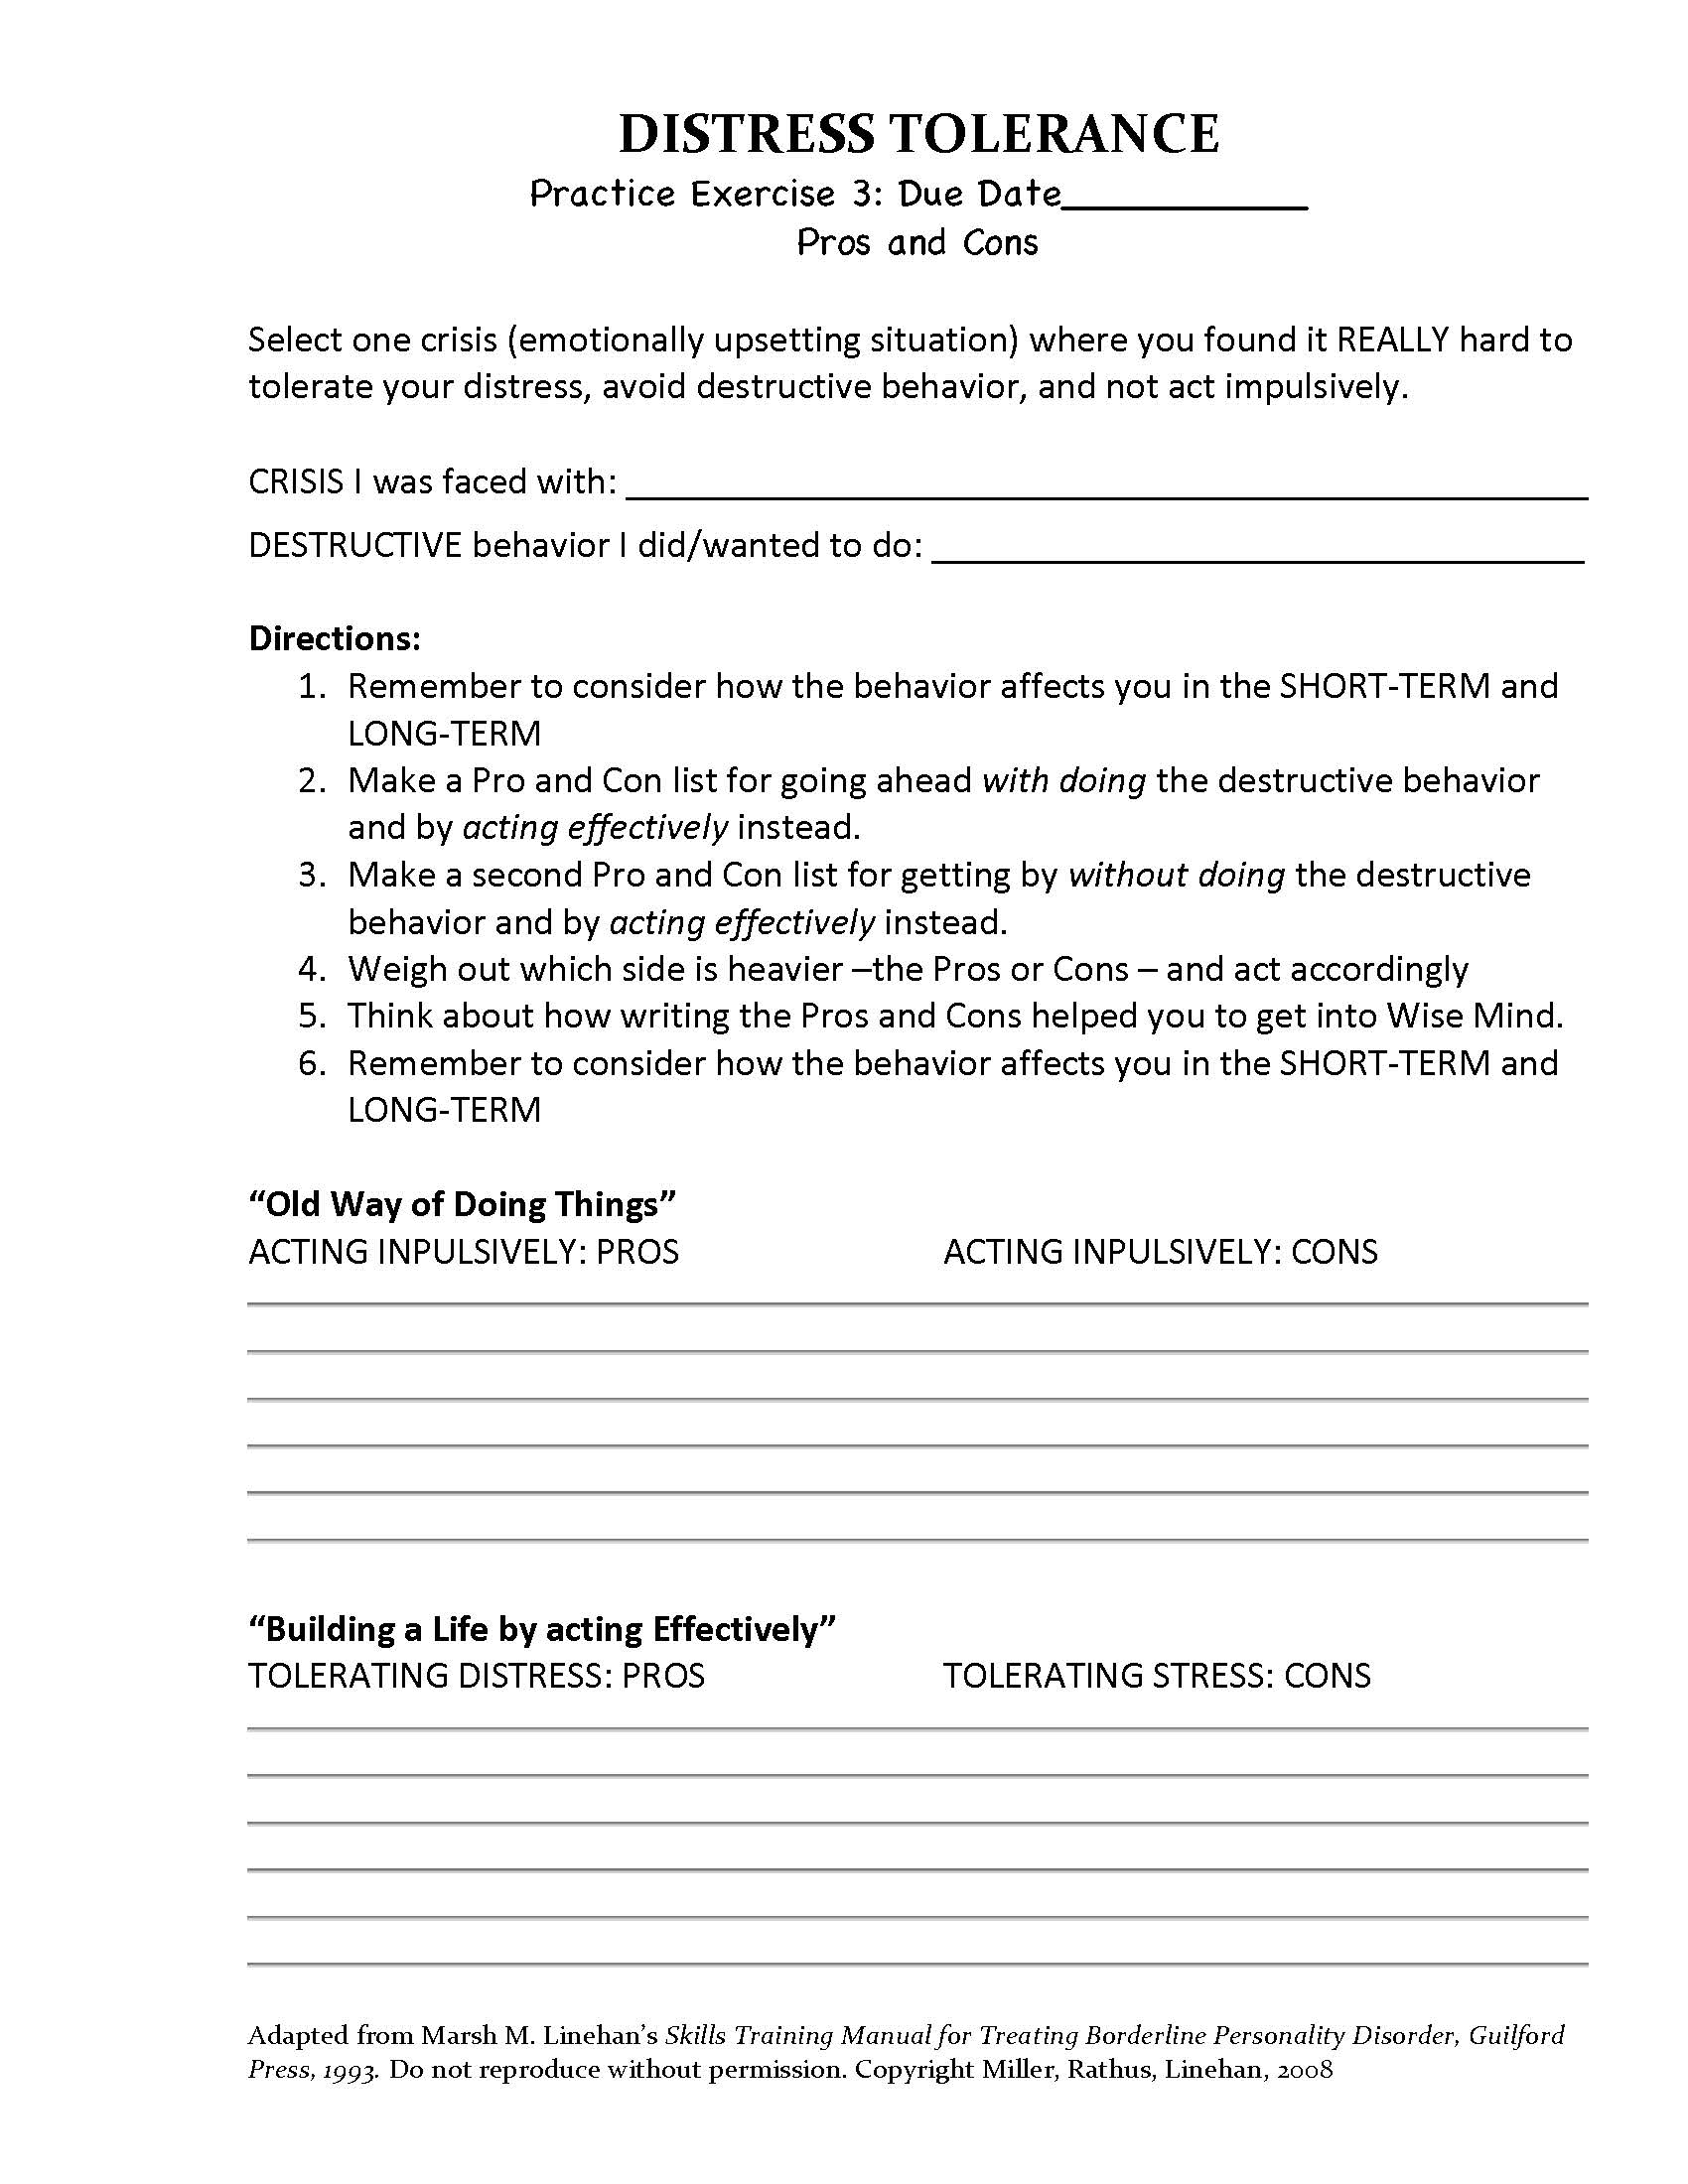 19 Best Images Of Distress Tolerance Worksheets